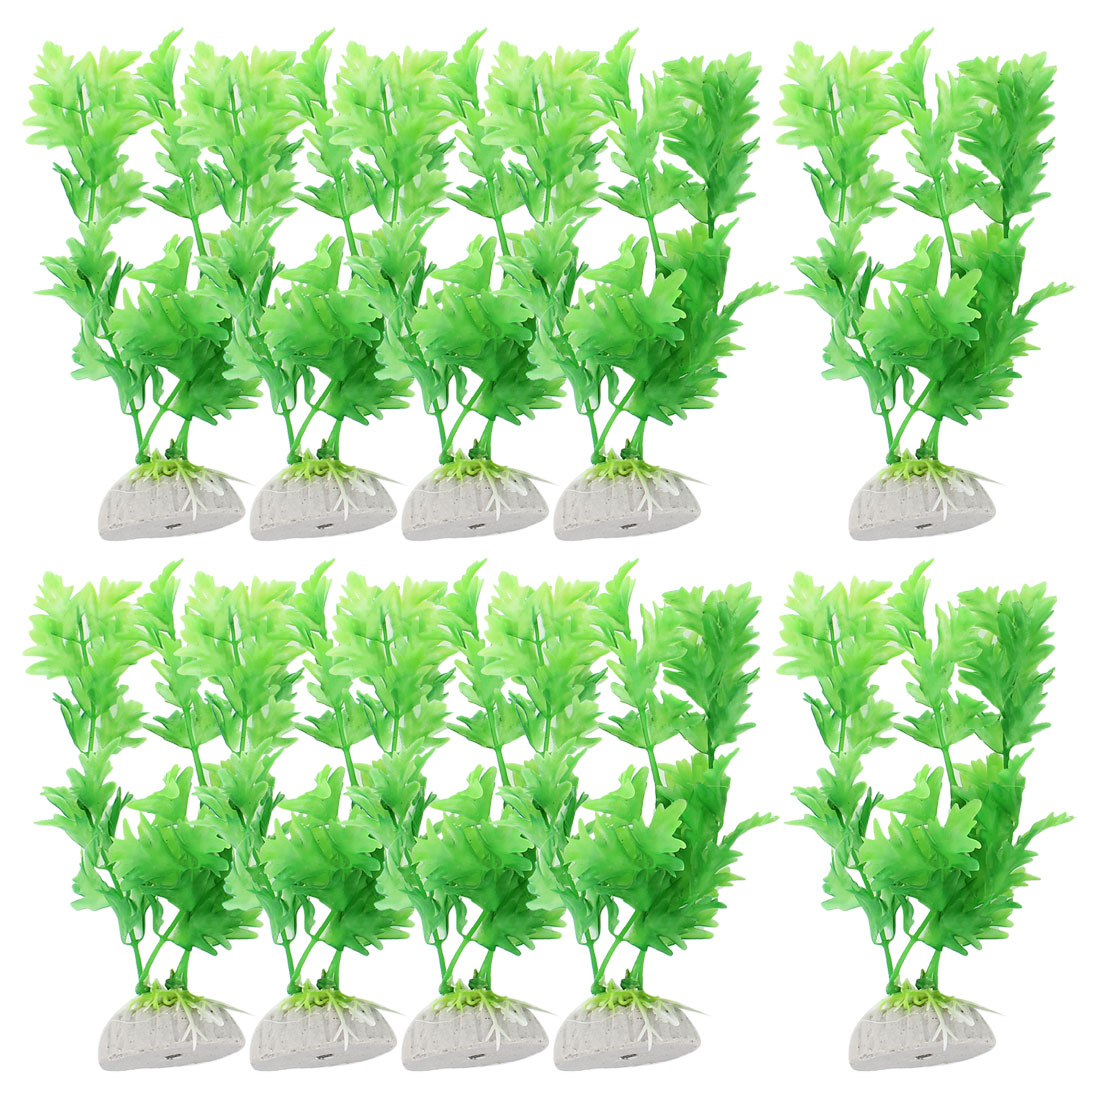 "10 Pcs 6.3"" High Underwater Plastic Plants Grass Green Decoration for Fish Tank"